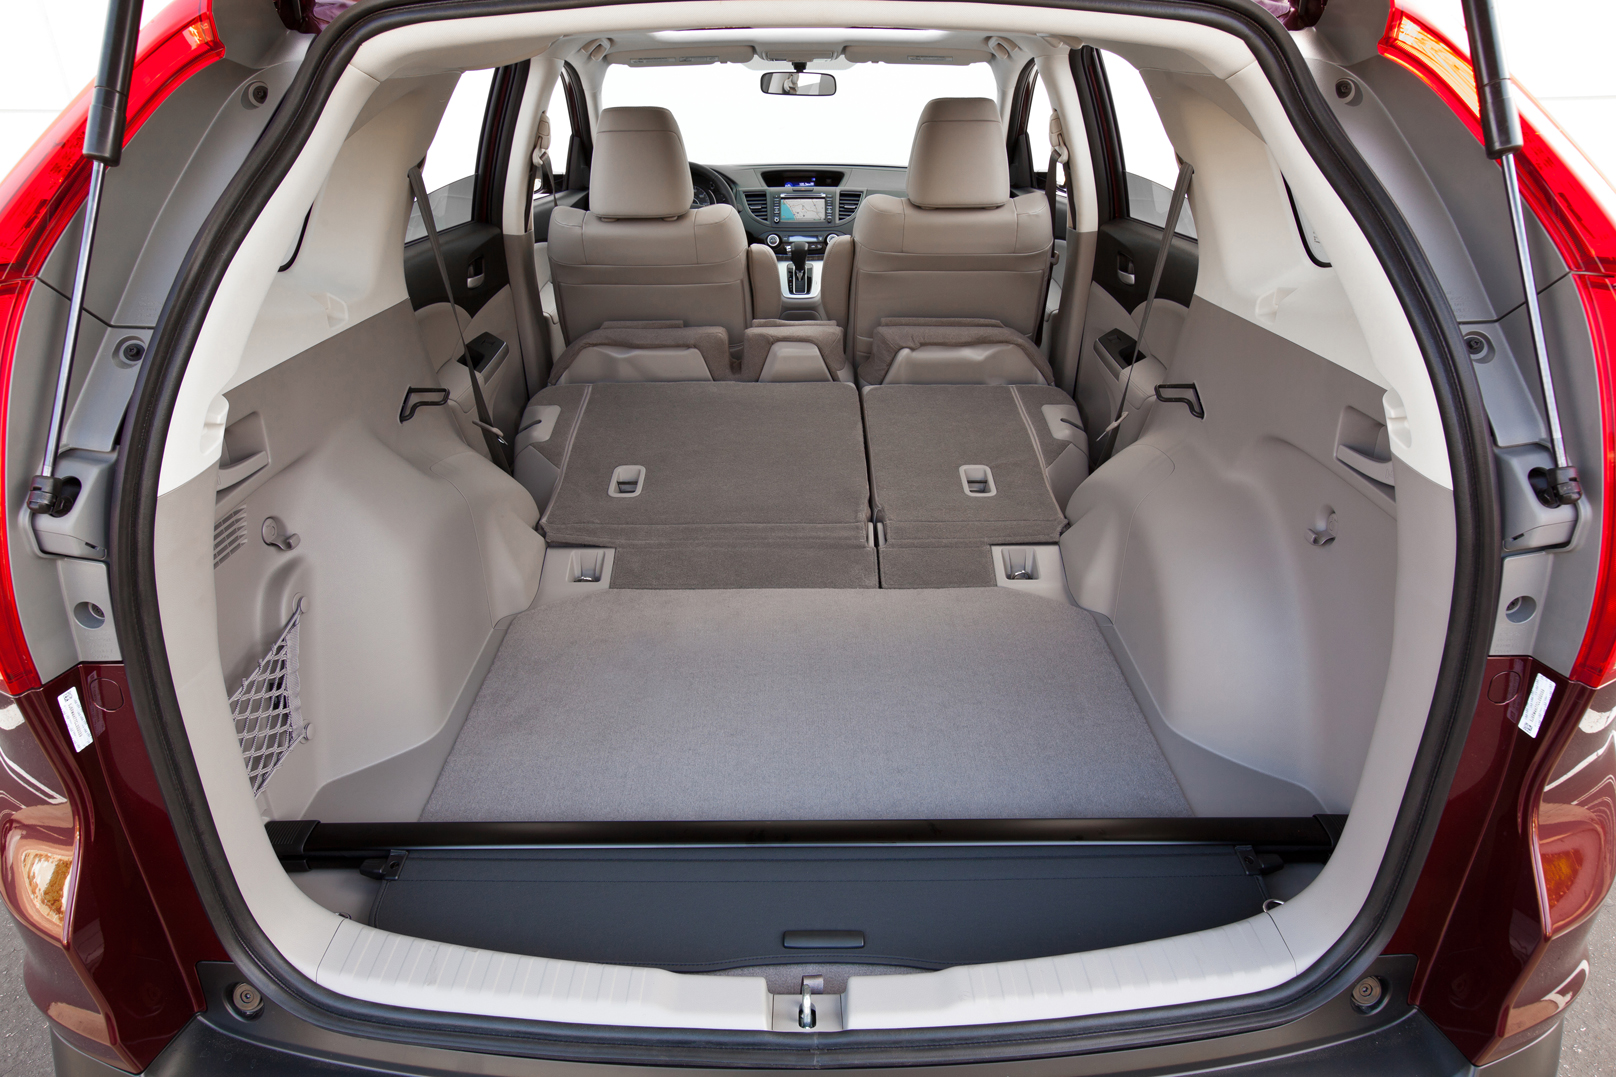 2012 Honda CR-V EX-L AWD interior